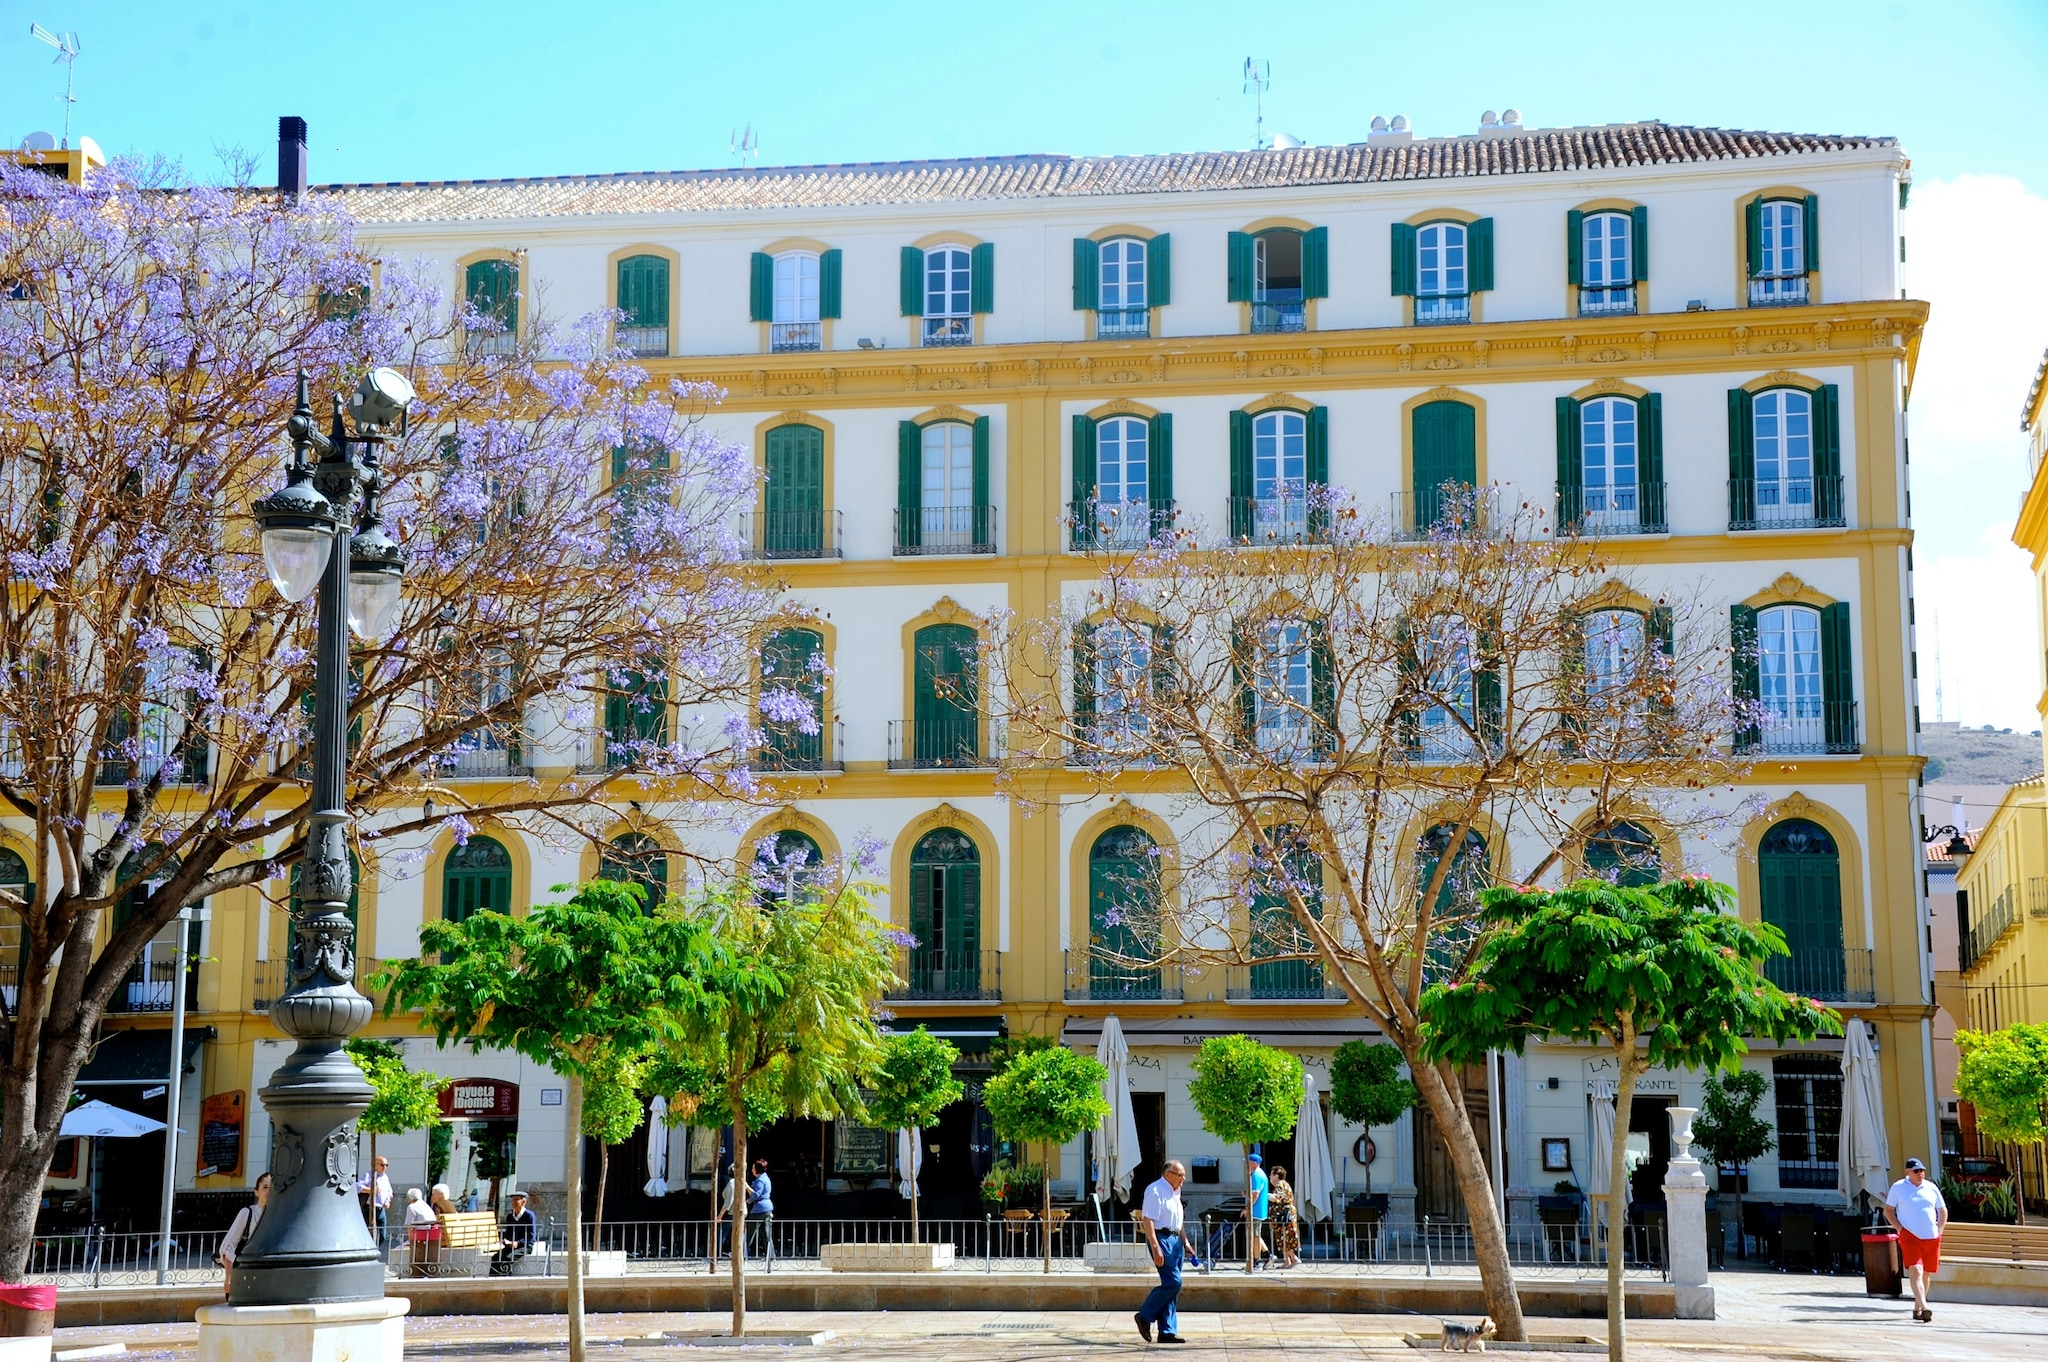 The house where Picasso was born on October 25, 1881.